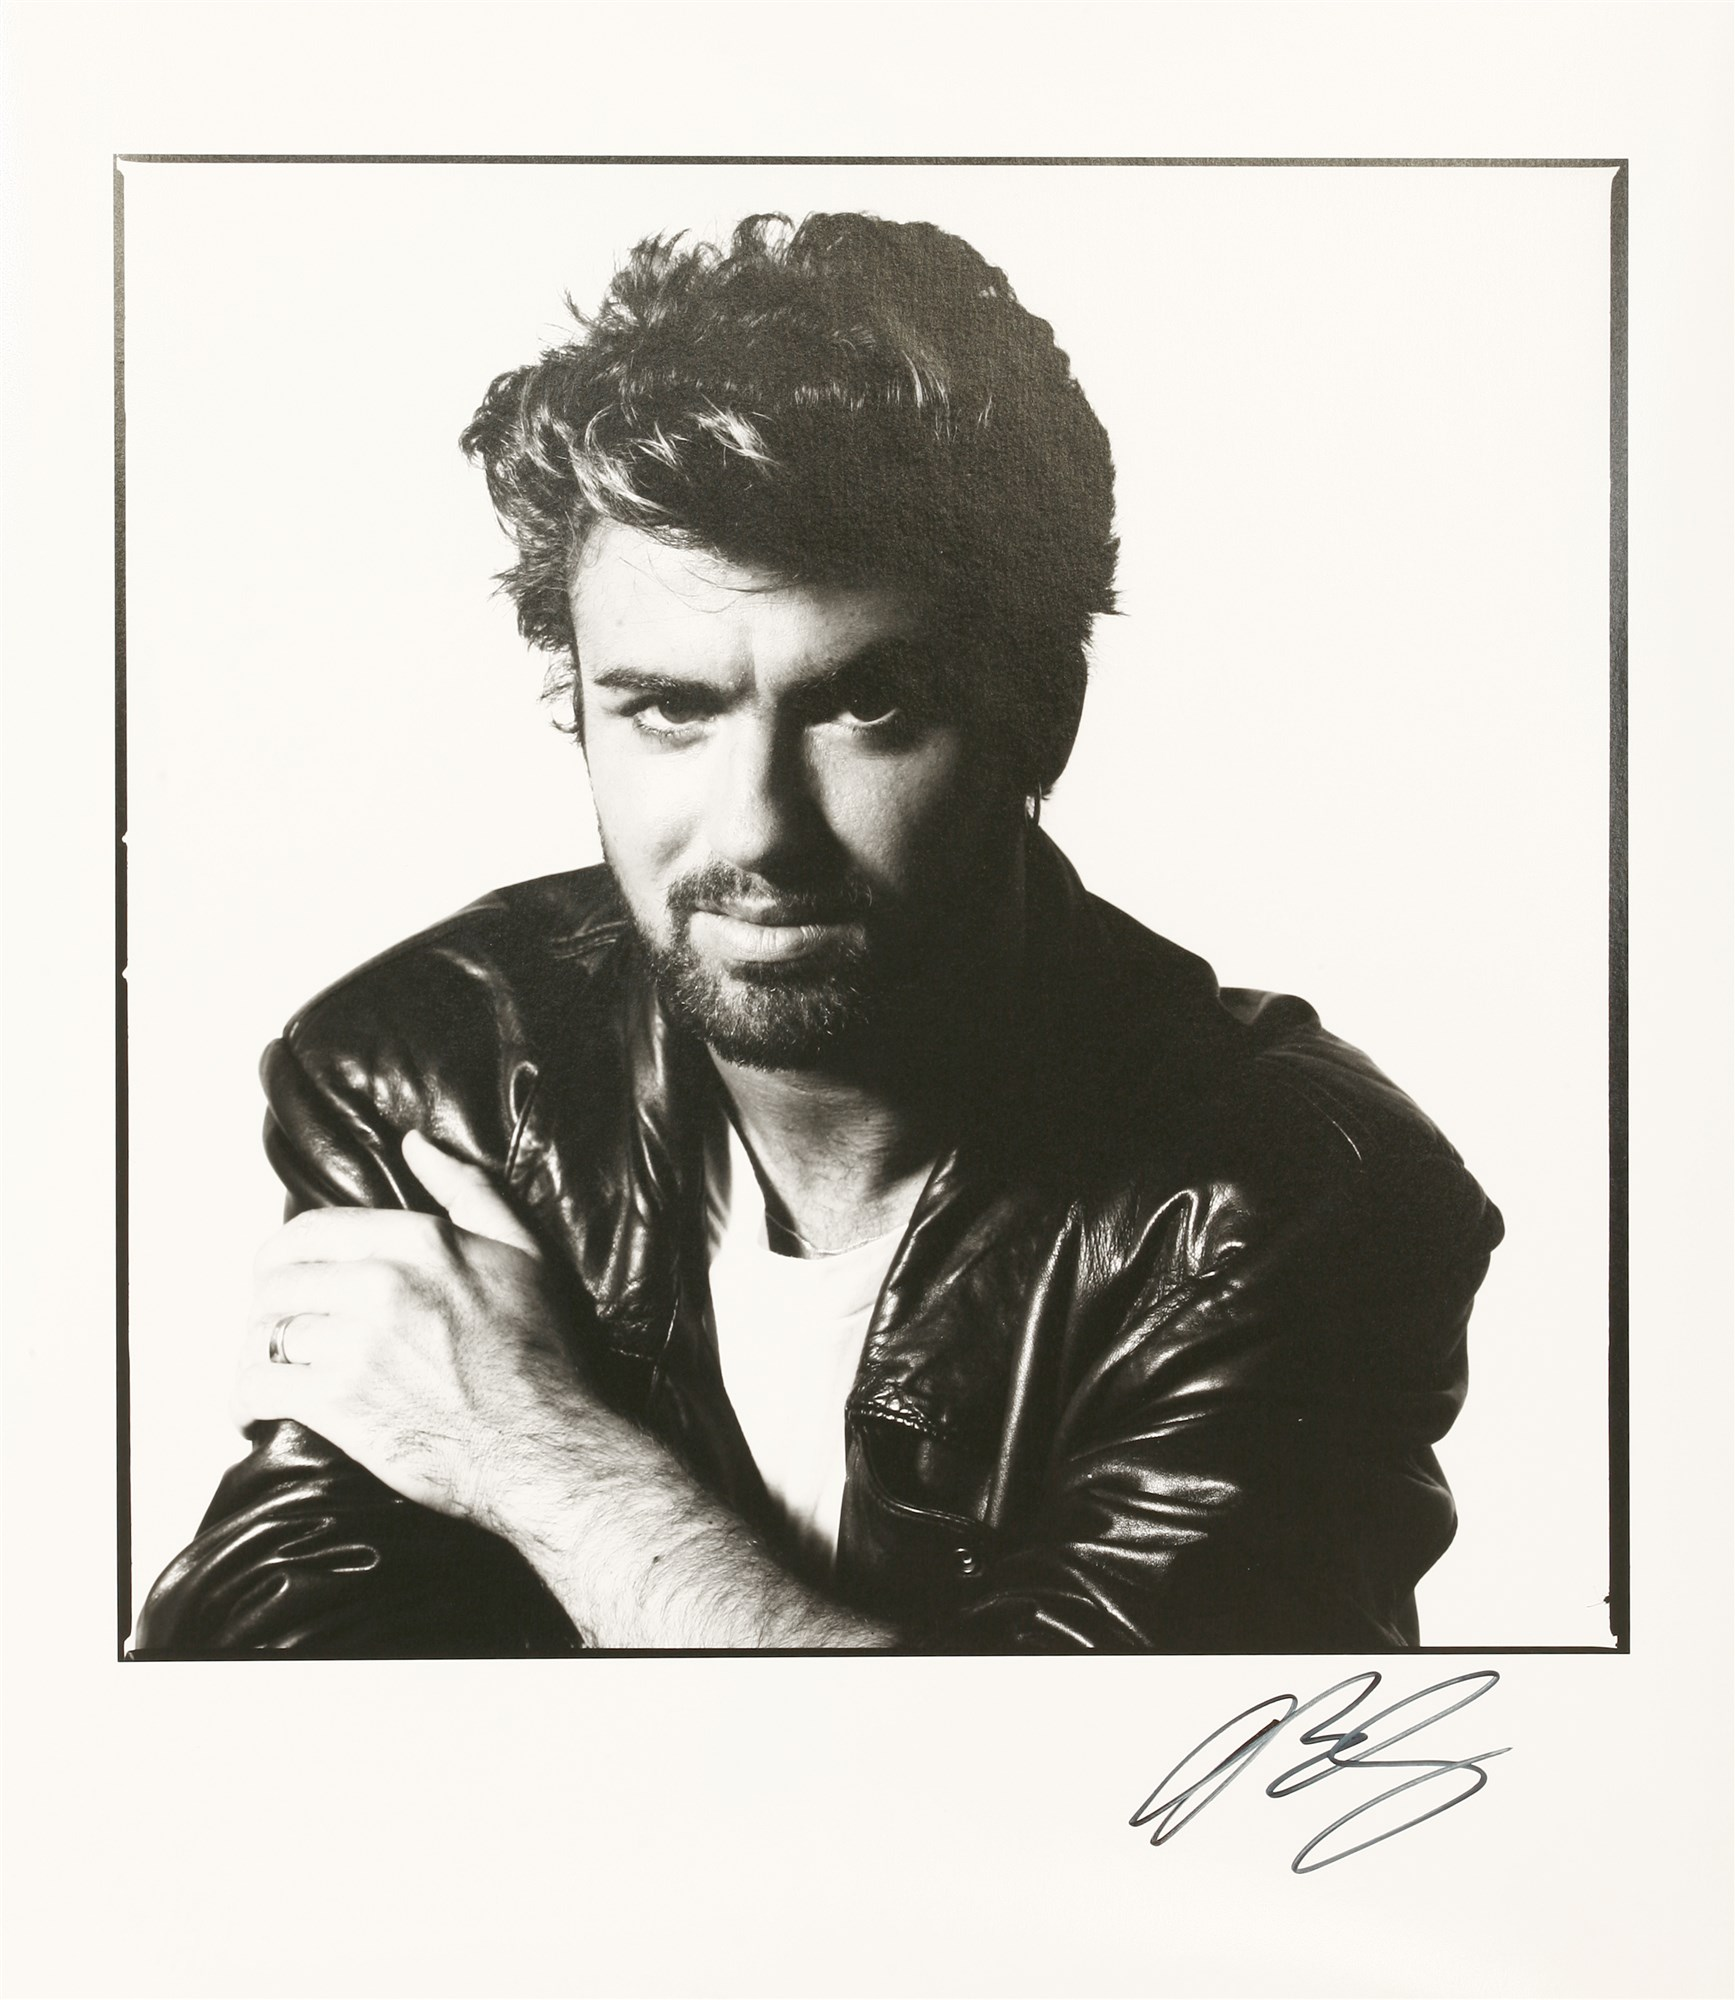 DAVID BAILEY (b. 1938) GEORGE MICHAEL, LIVE AID 13TH JULY 1985